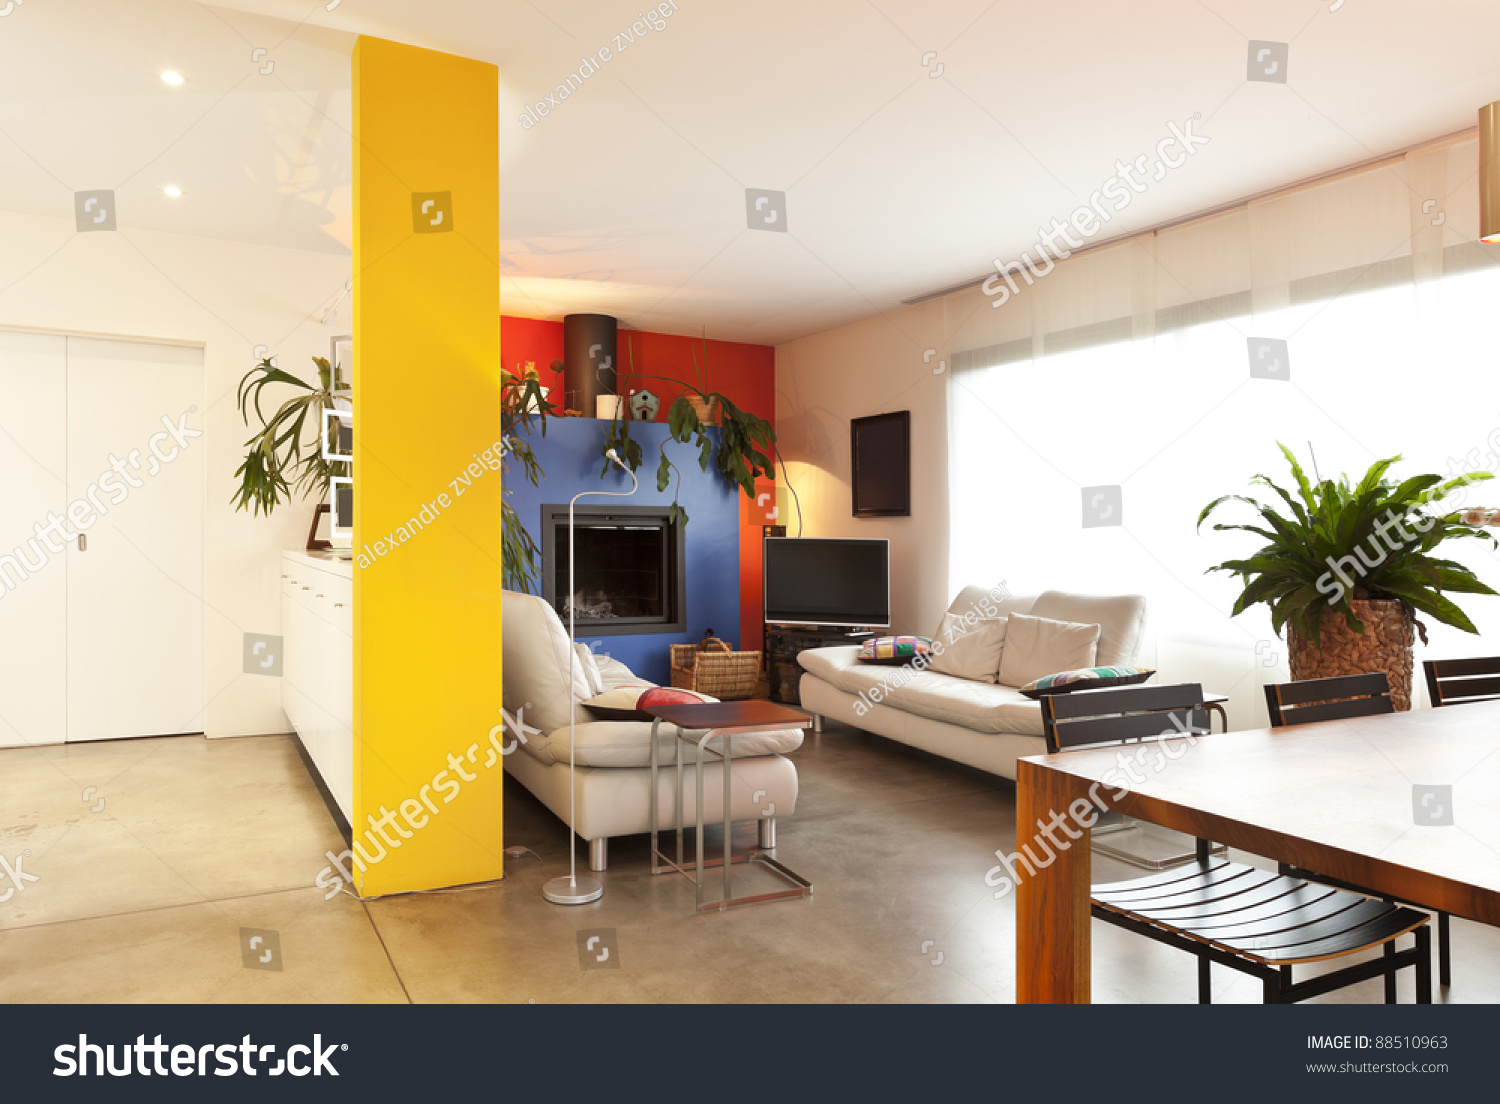 Comfortable Modern Apartment Hall View Living Room Background Stock Photo 88510963 Shutterstock